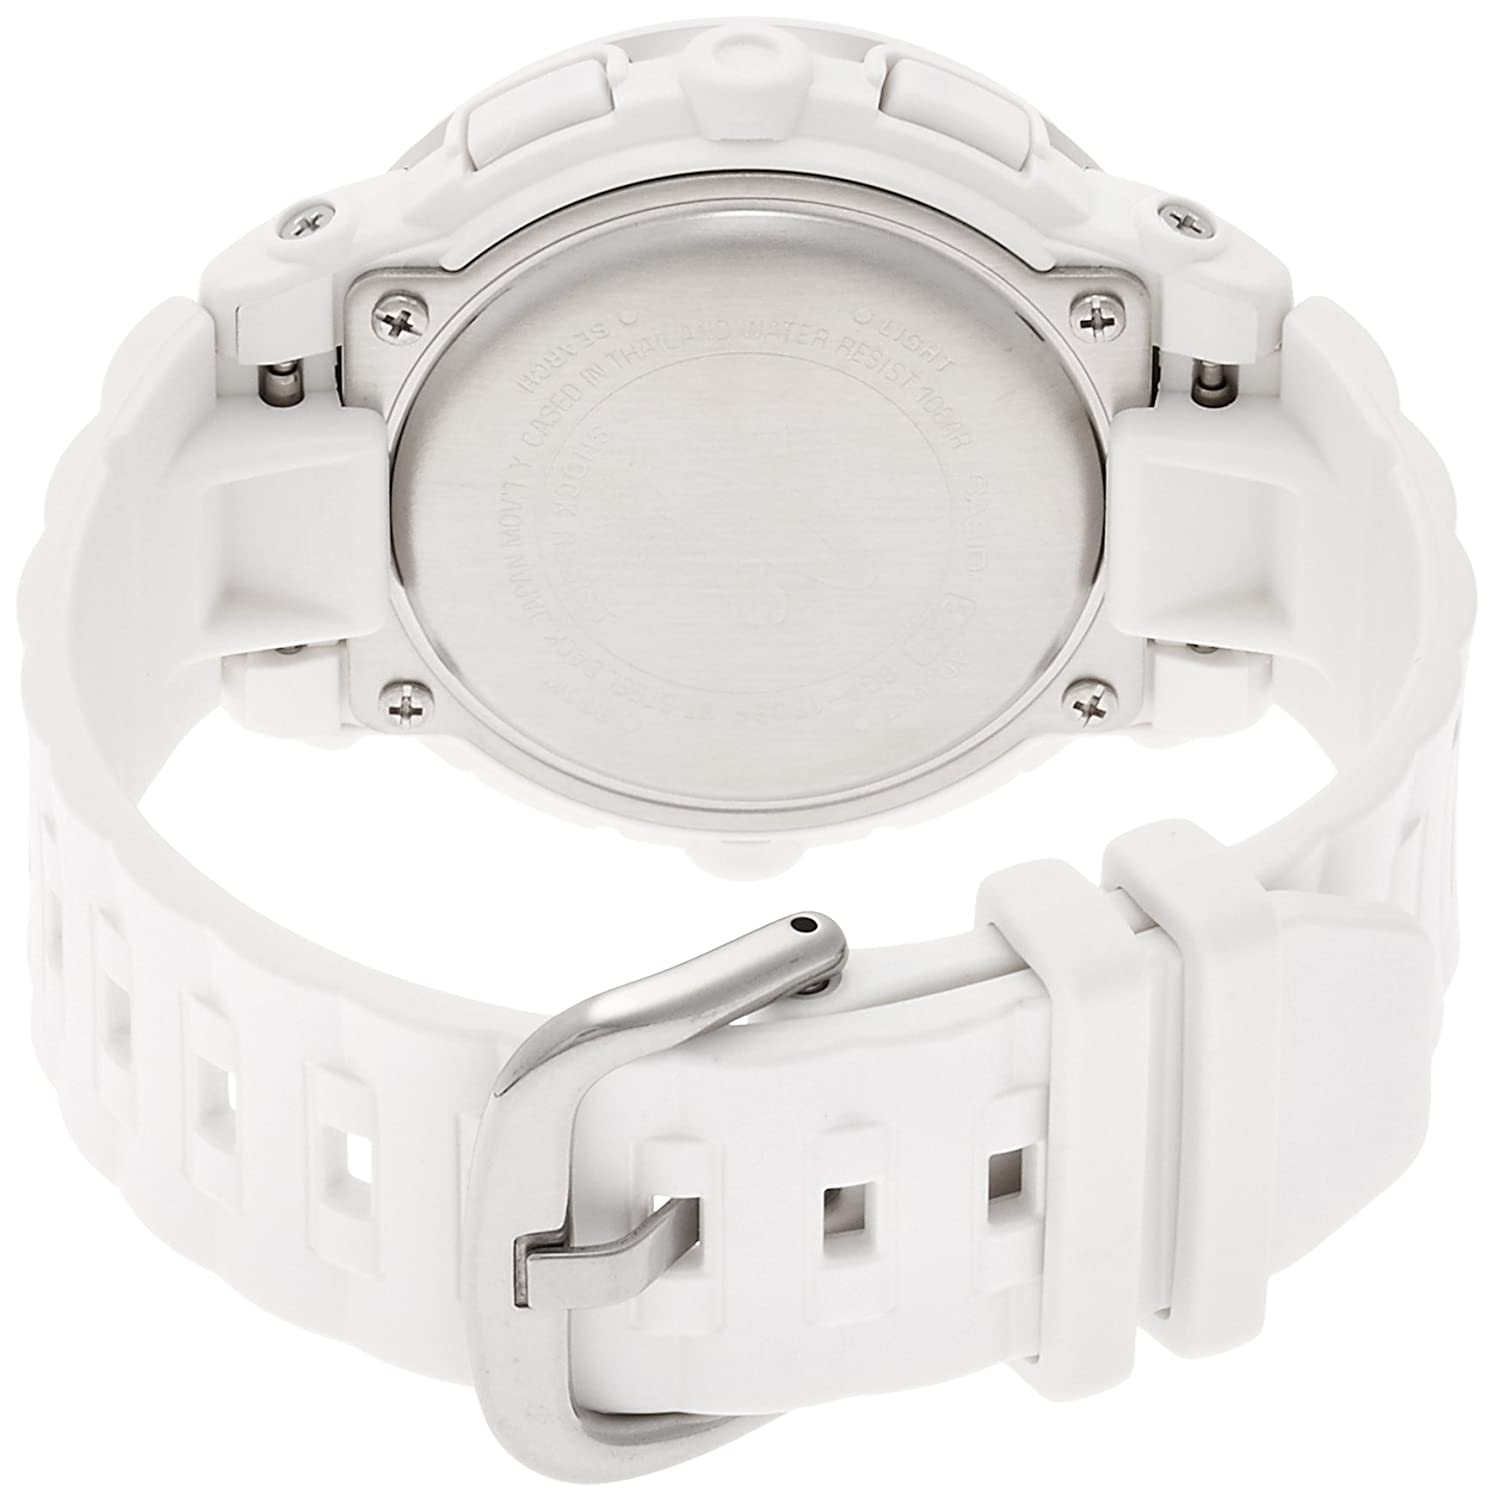 Casio Baby G Female White Analogue Digital Watch Bga 150ef 7b Babyg Bg 169r 4bdr 7bdr Fashion